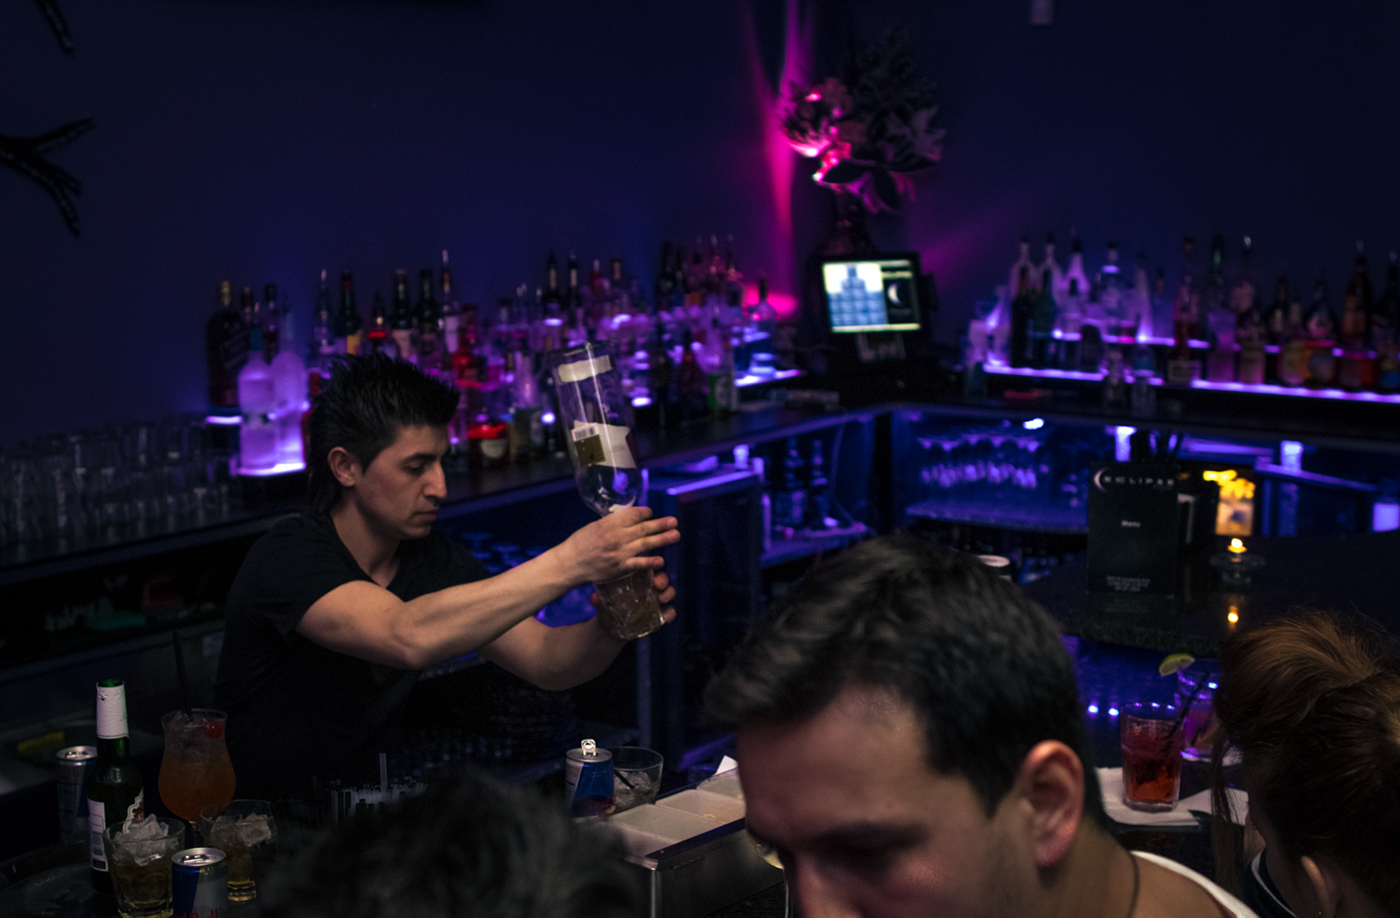 eclipse lounge Nightlife bar club alcohol party schiller park